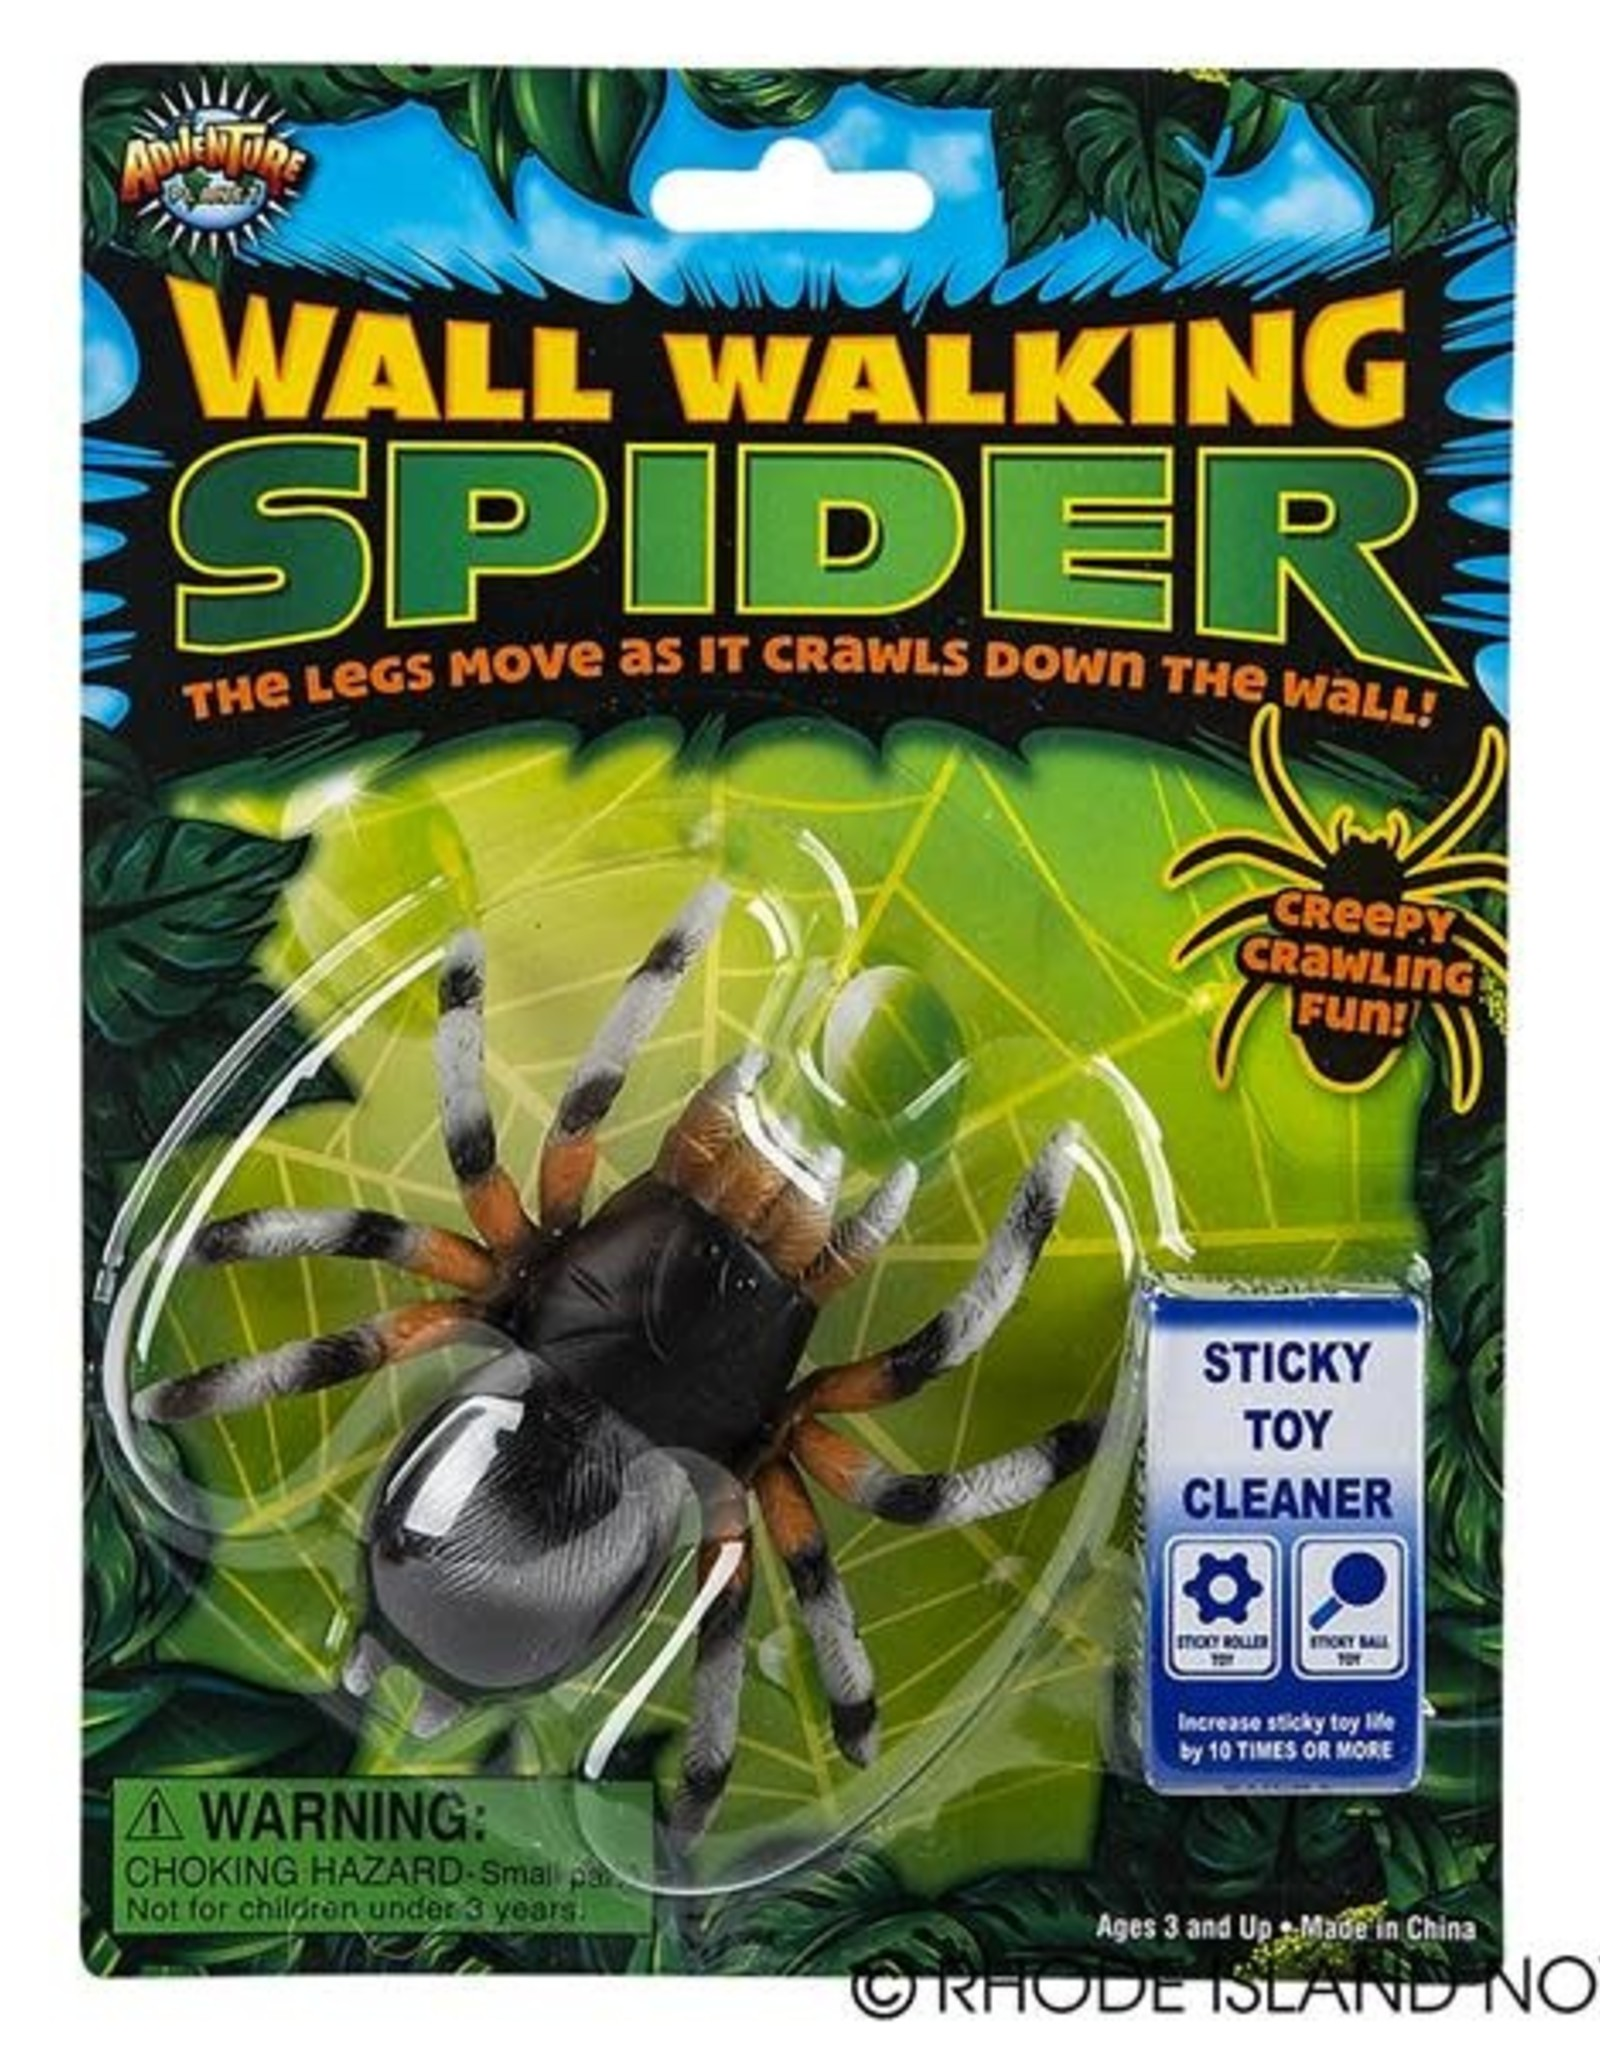 Wall walking spider